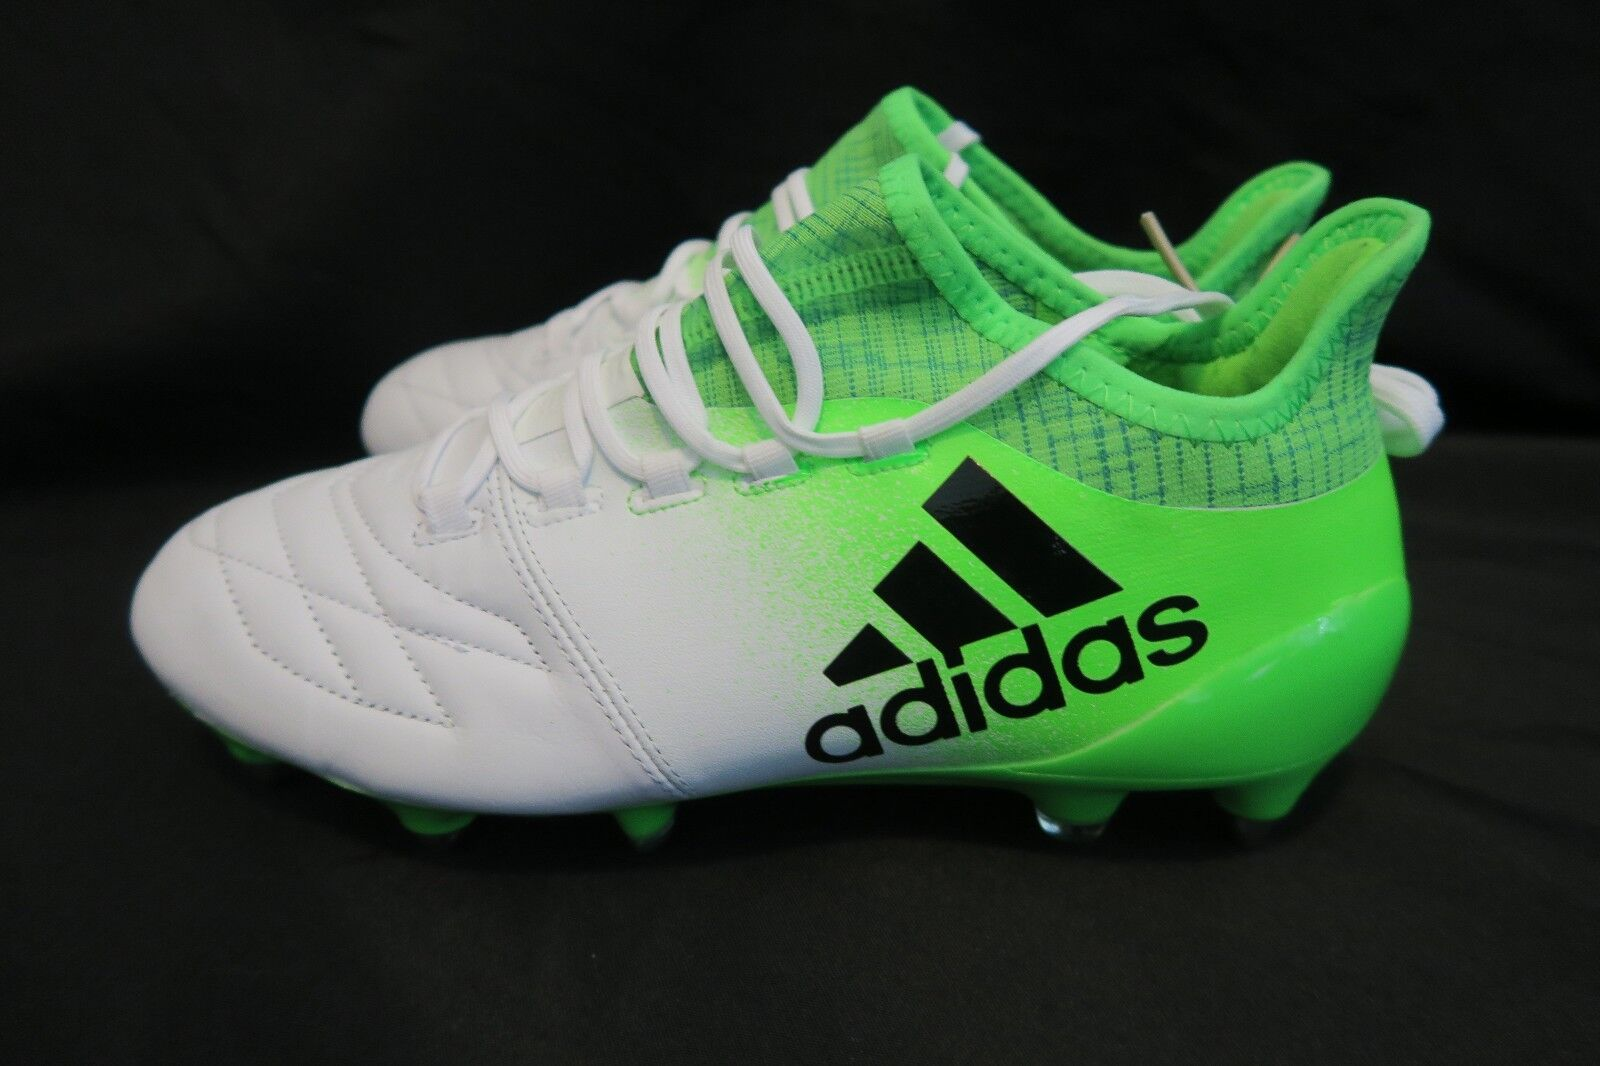 ADIDAS X 16.1 LEATHER SG SOCCER CLEATS BOOTS WHITE SOLAR GRE